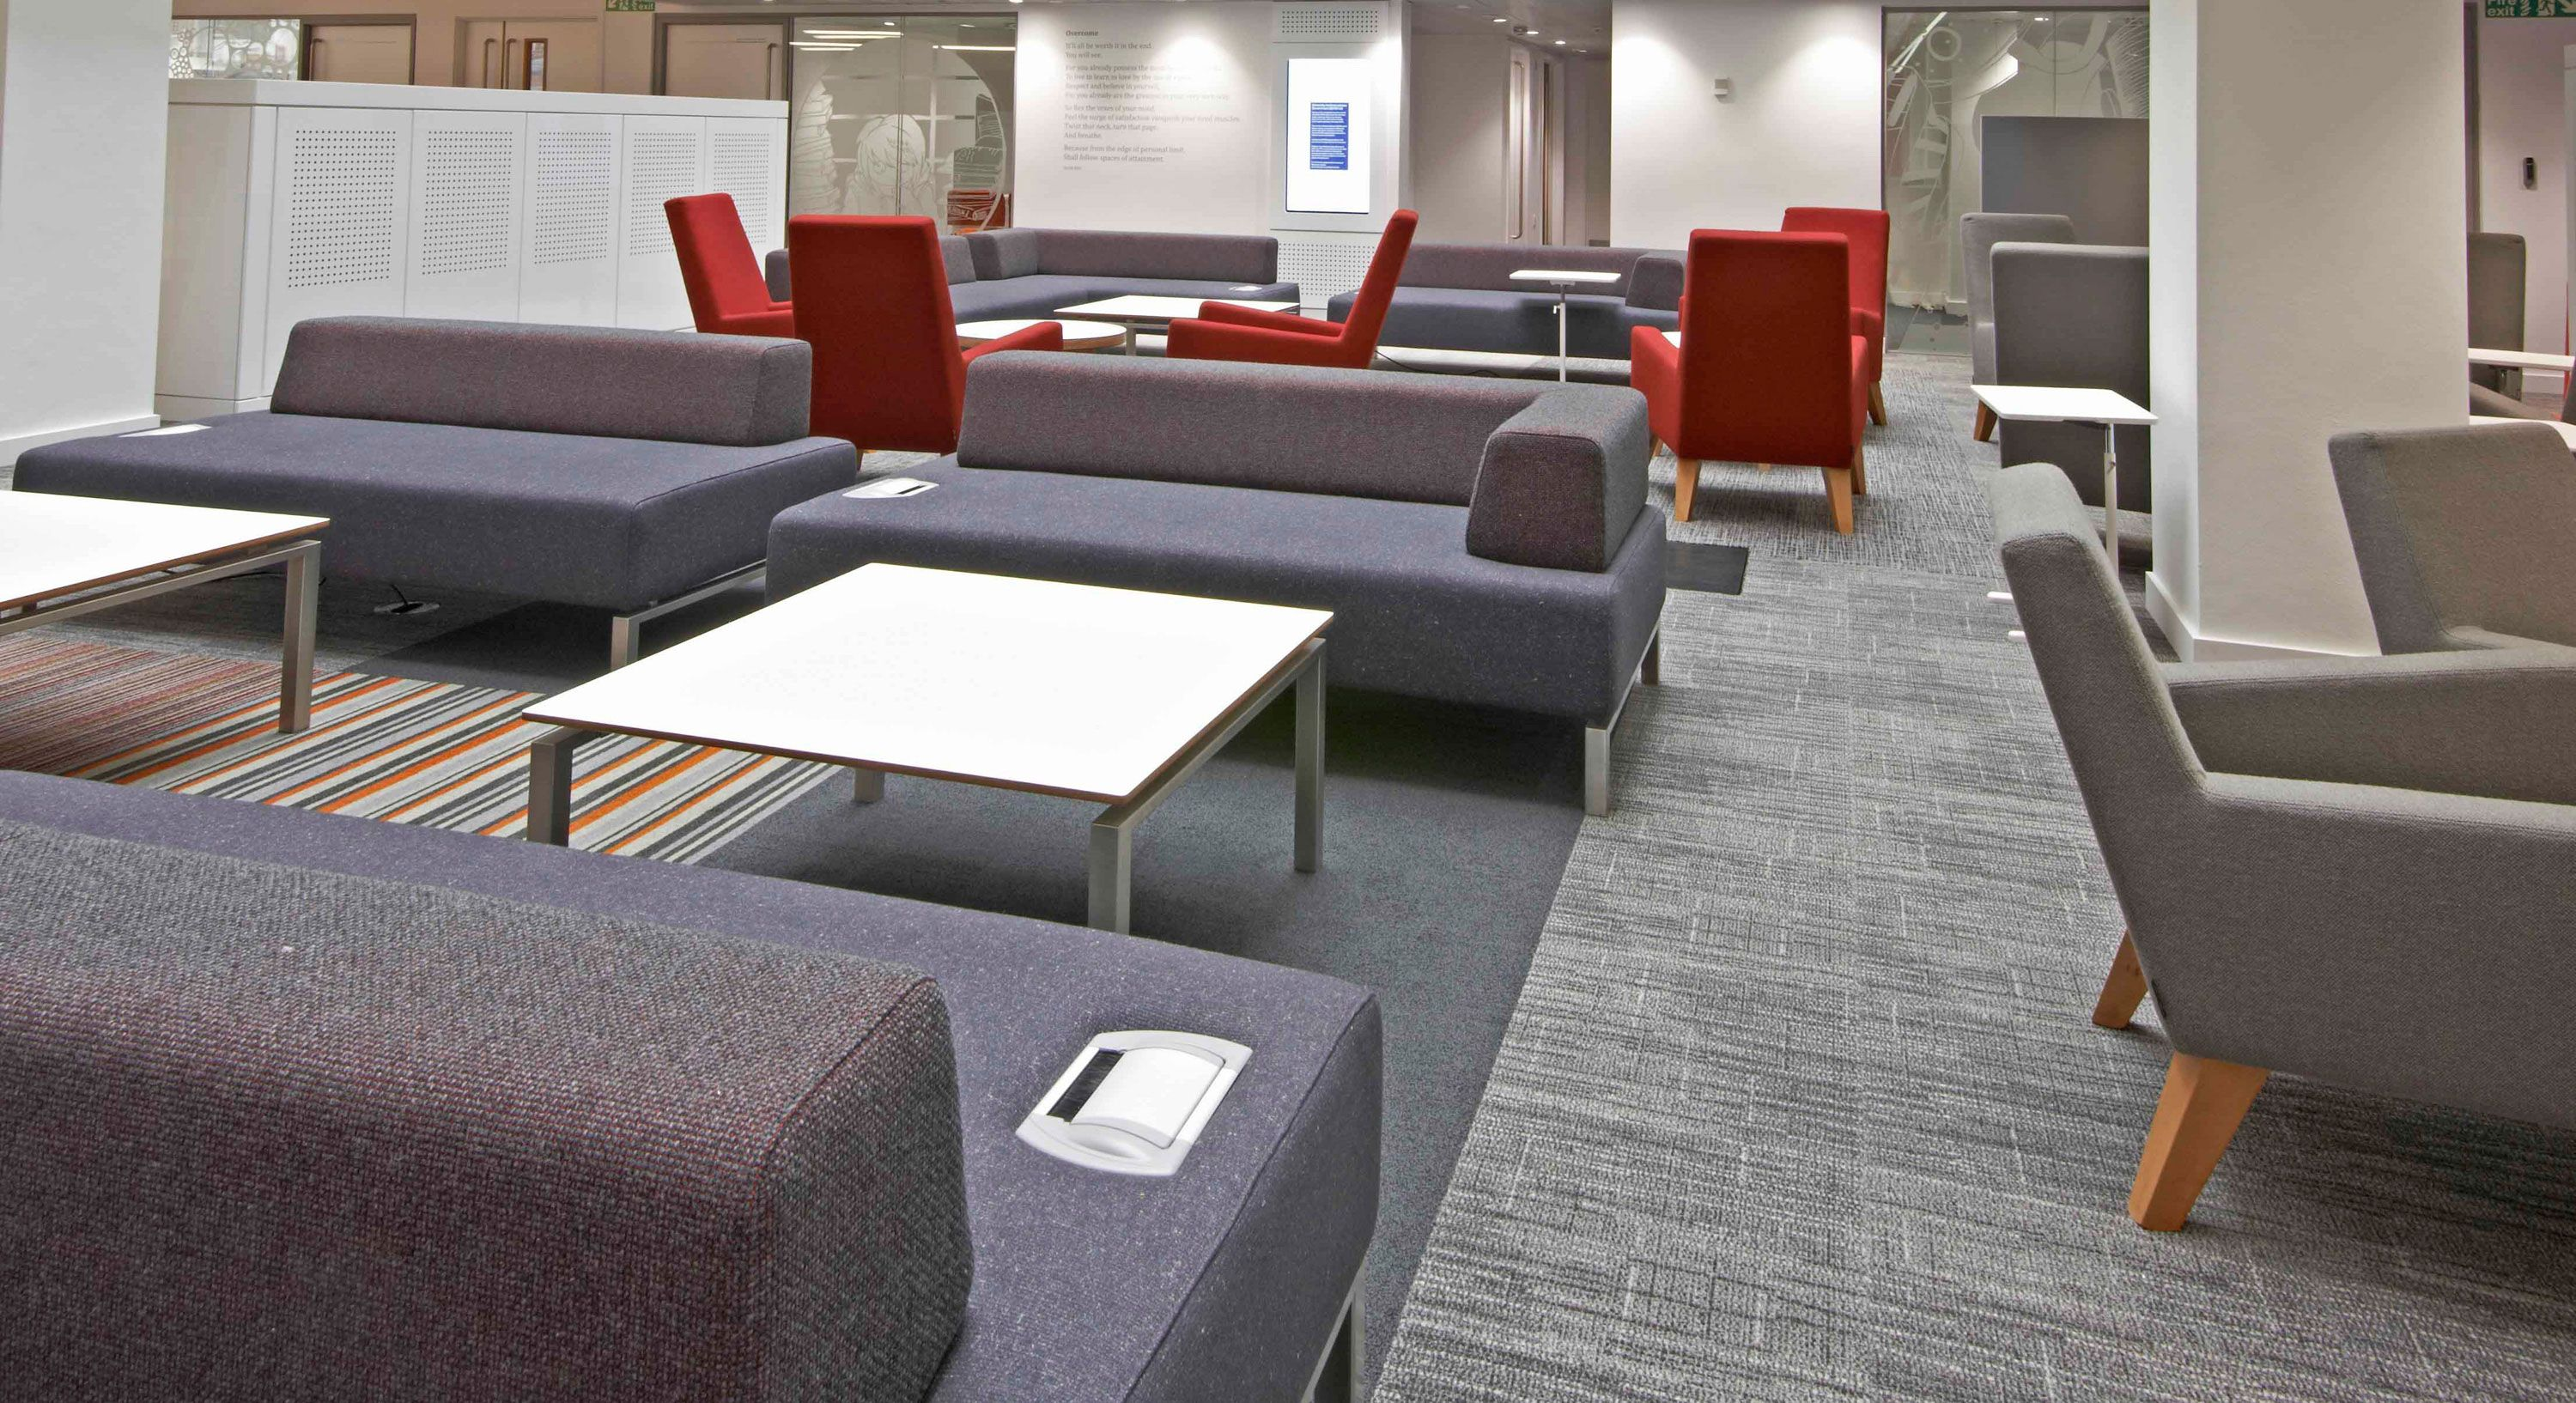 Alan Gilbert Learning Commons University Of Manchester Hitch  # Muebles Dico Power Center